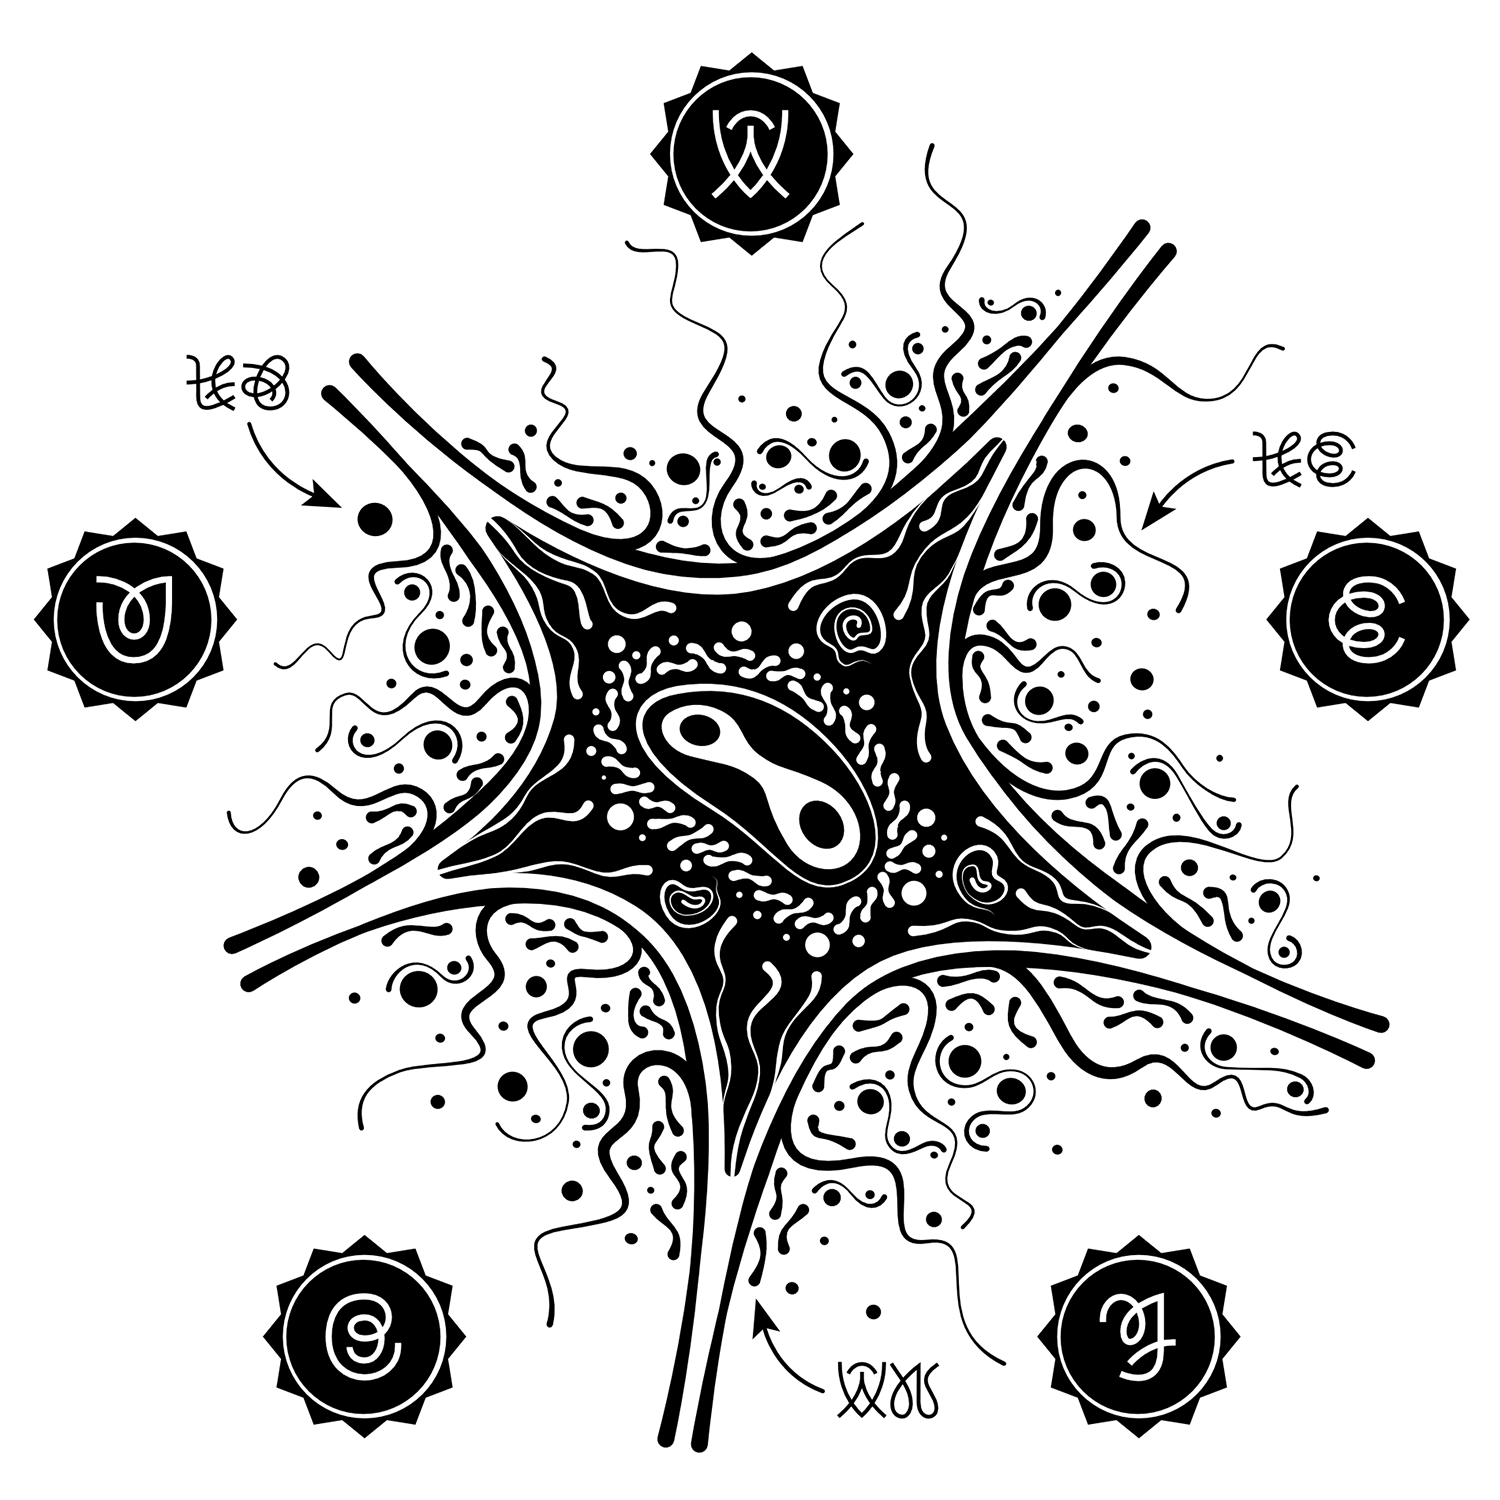 Alchemy-02.png